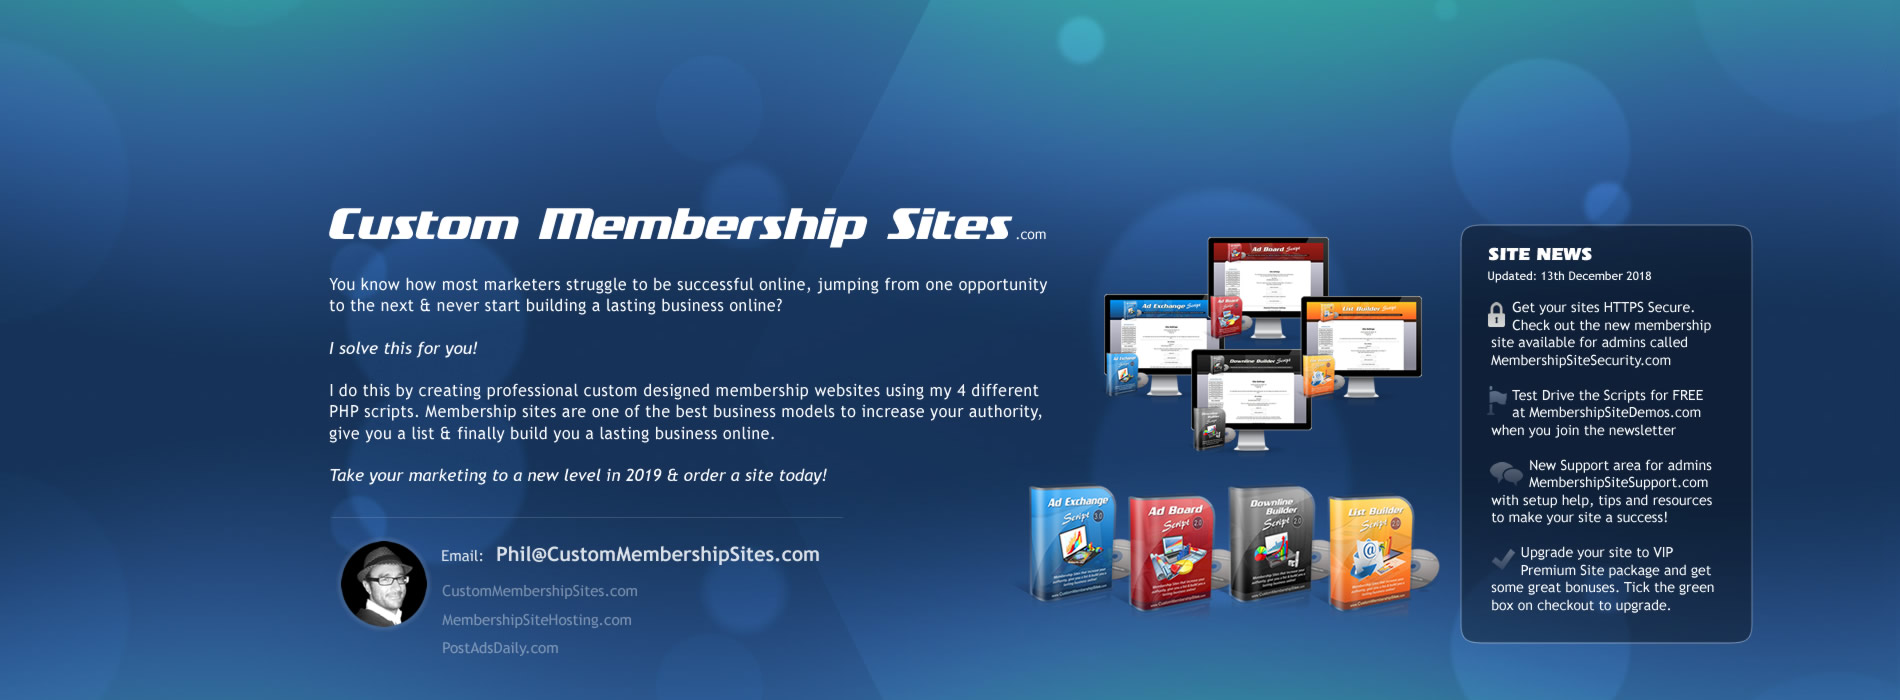 Custom Membership Sites